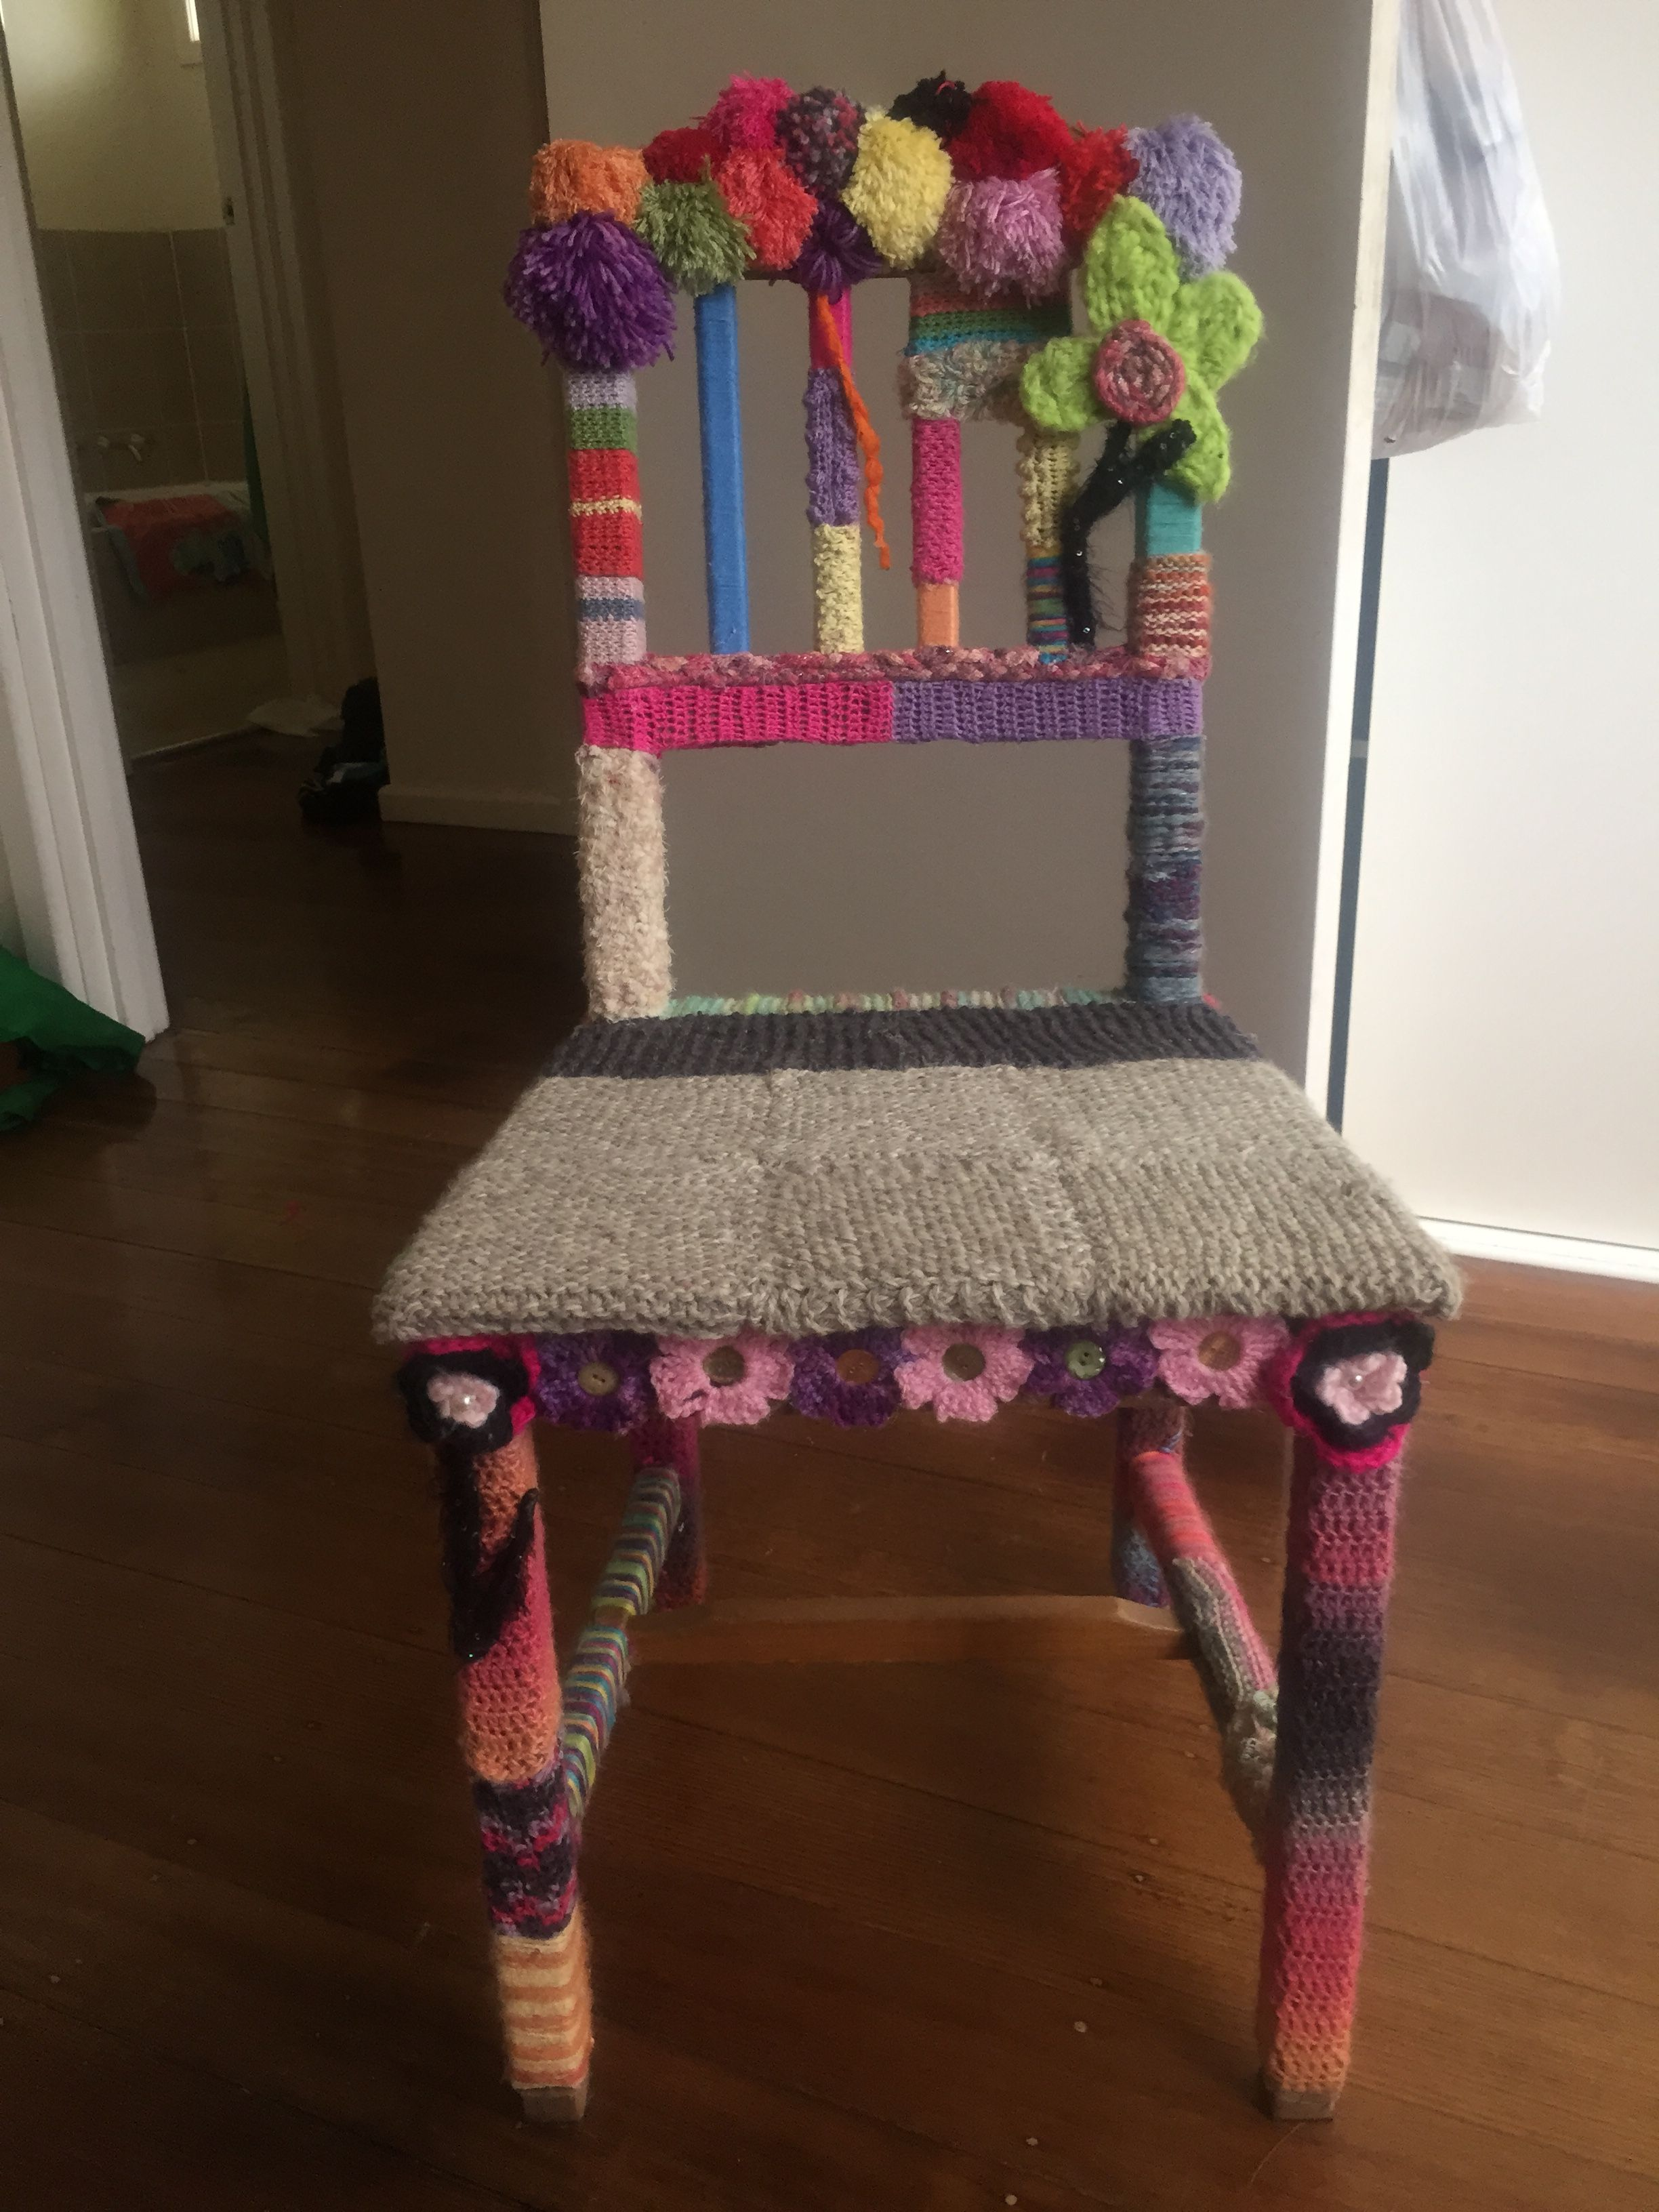 My Completed yarn bomb chair September 2015 | Yarn bombed chair ...